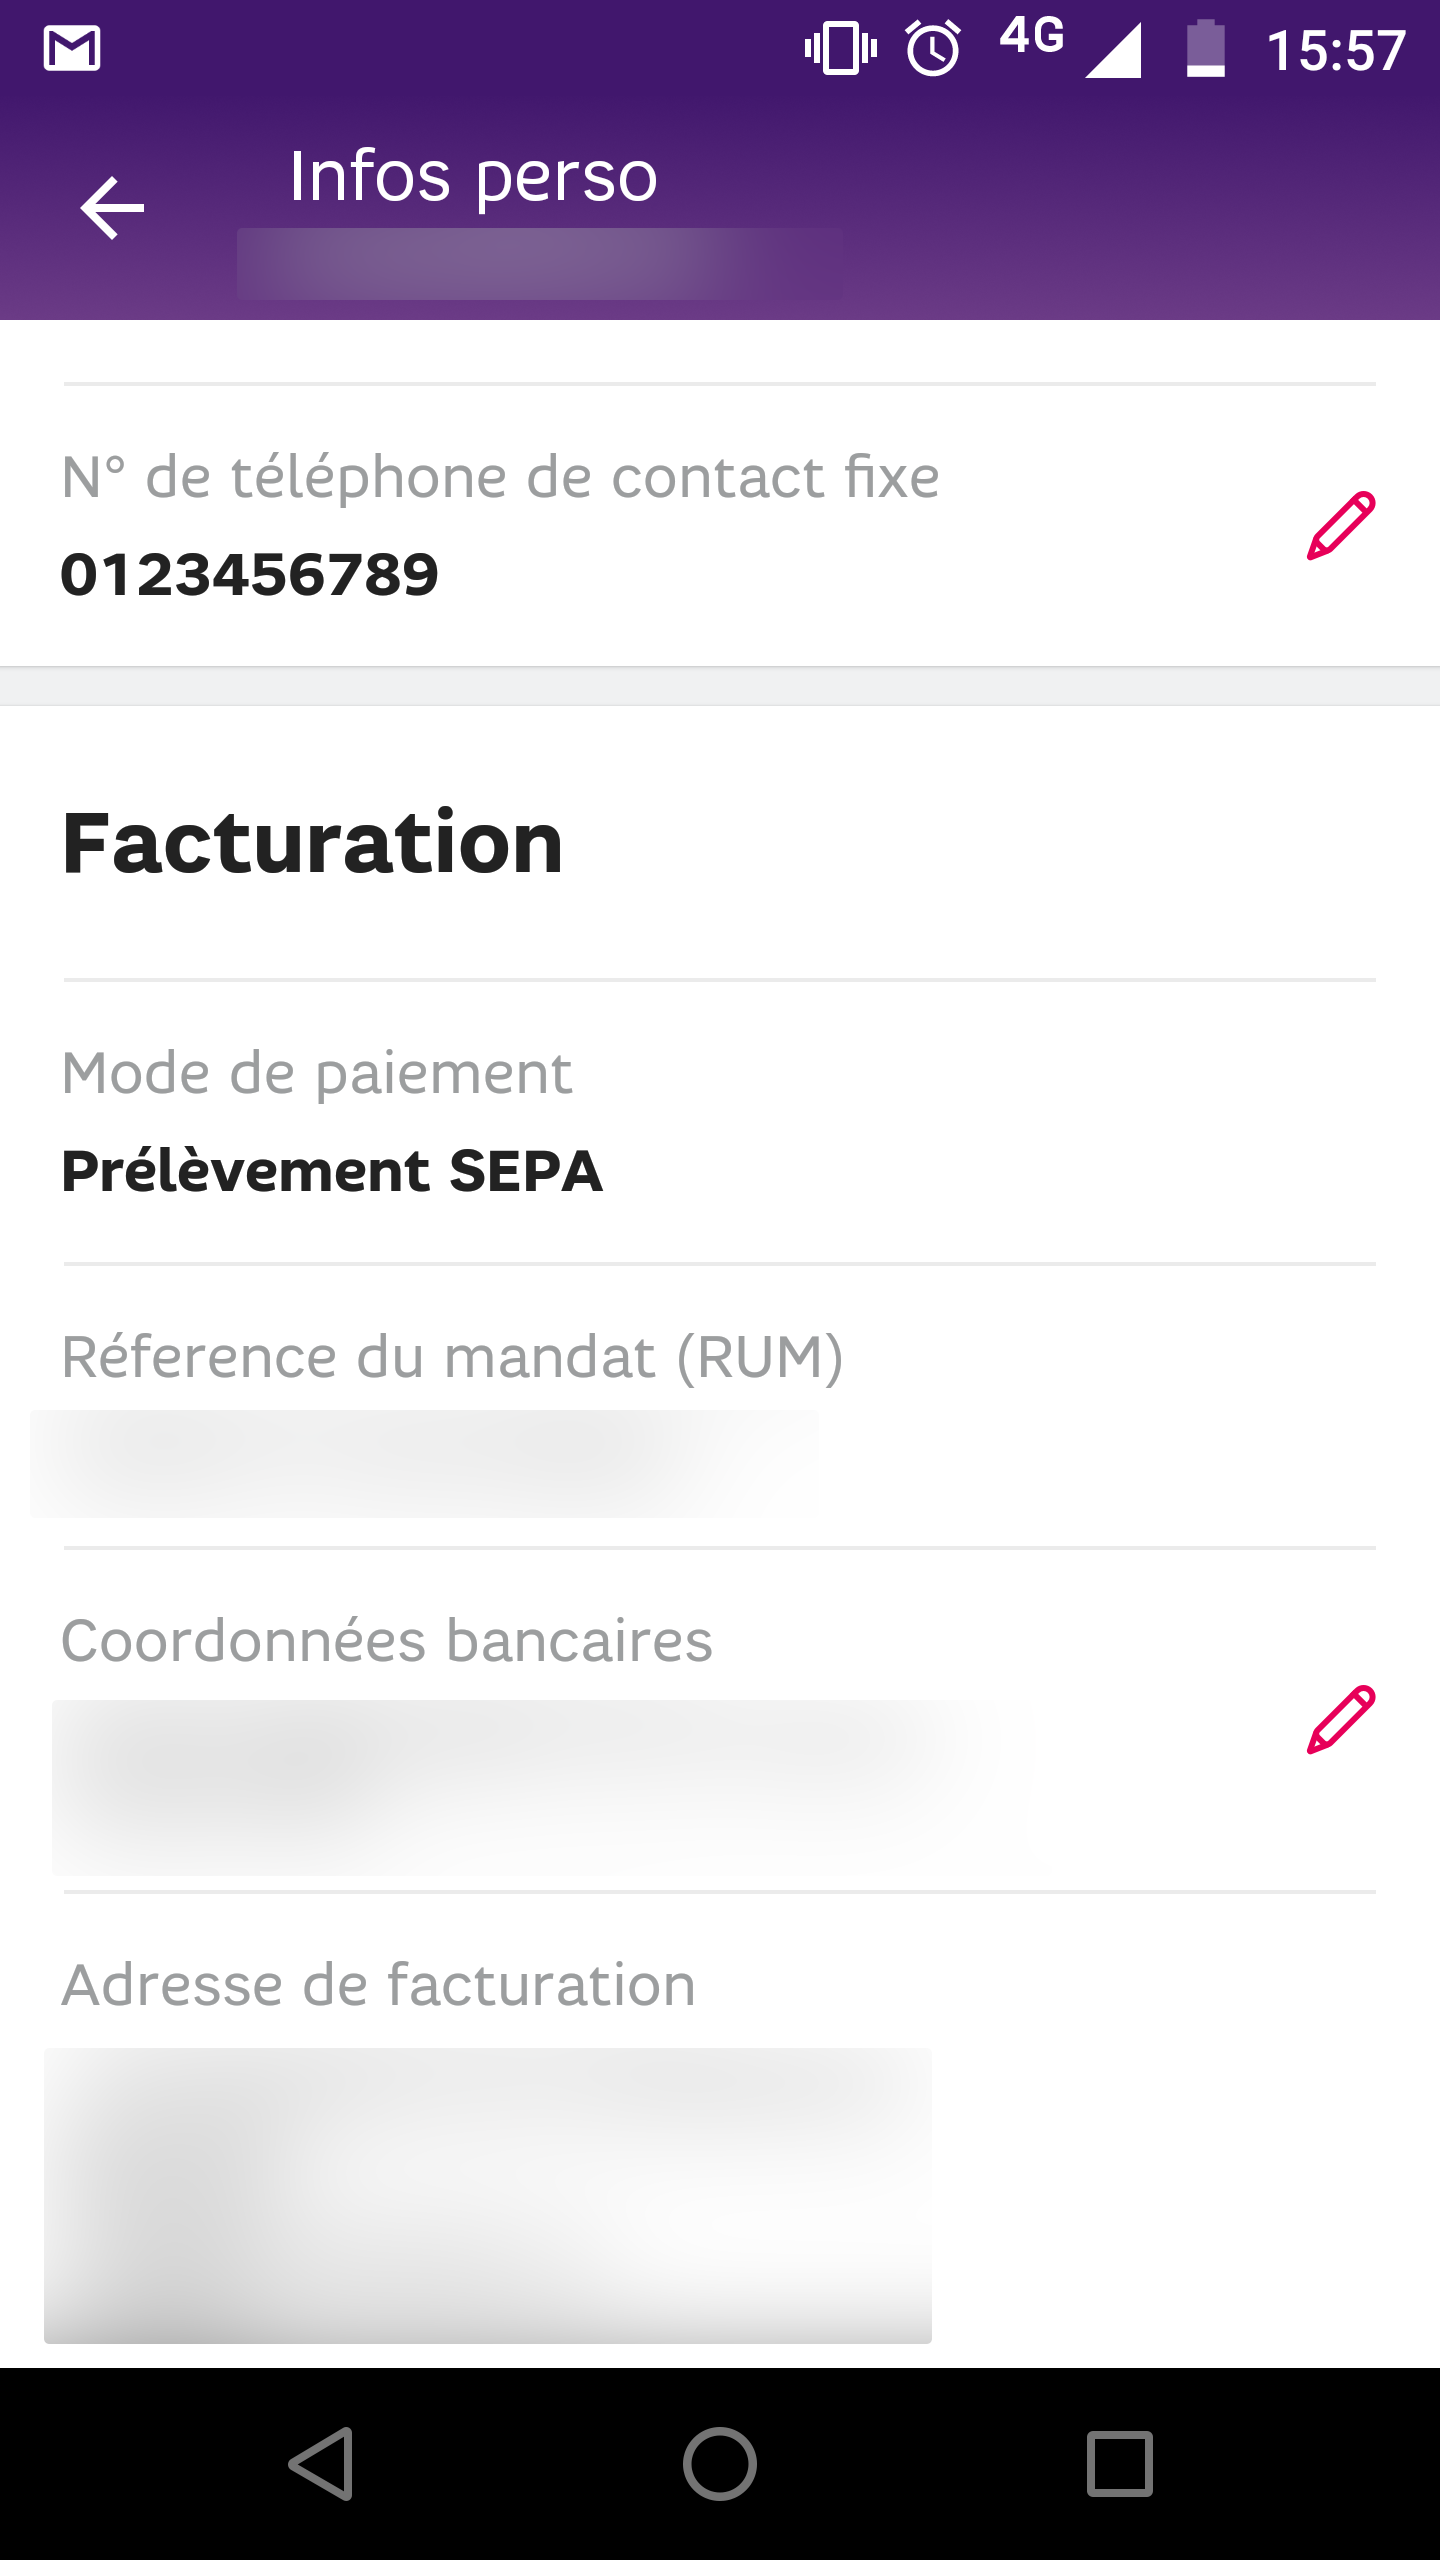 SFR_SFR-Payer-factures-prelevement-auto-SFR_050719_BLOG-prelevement-auto-sfr-007.png